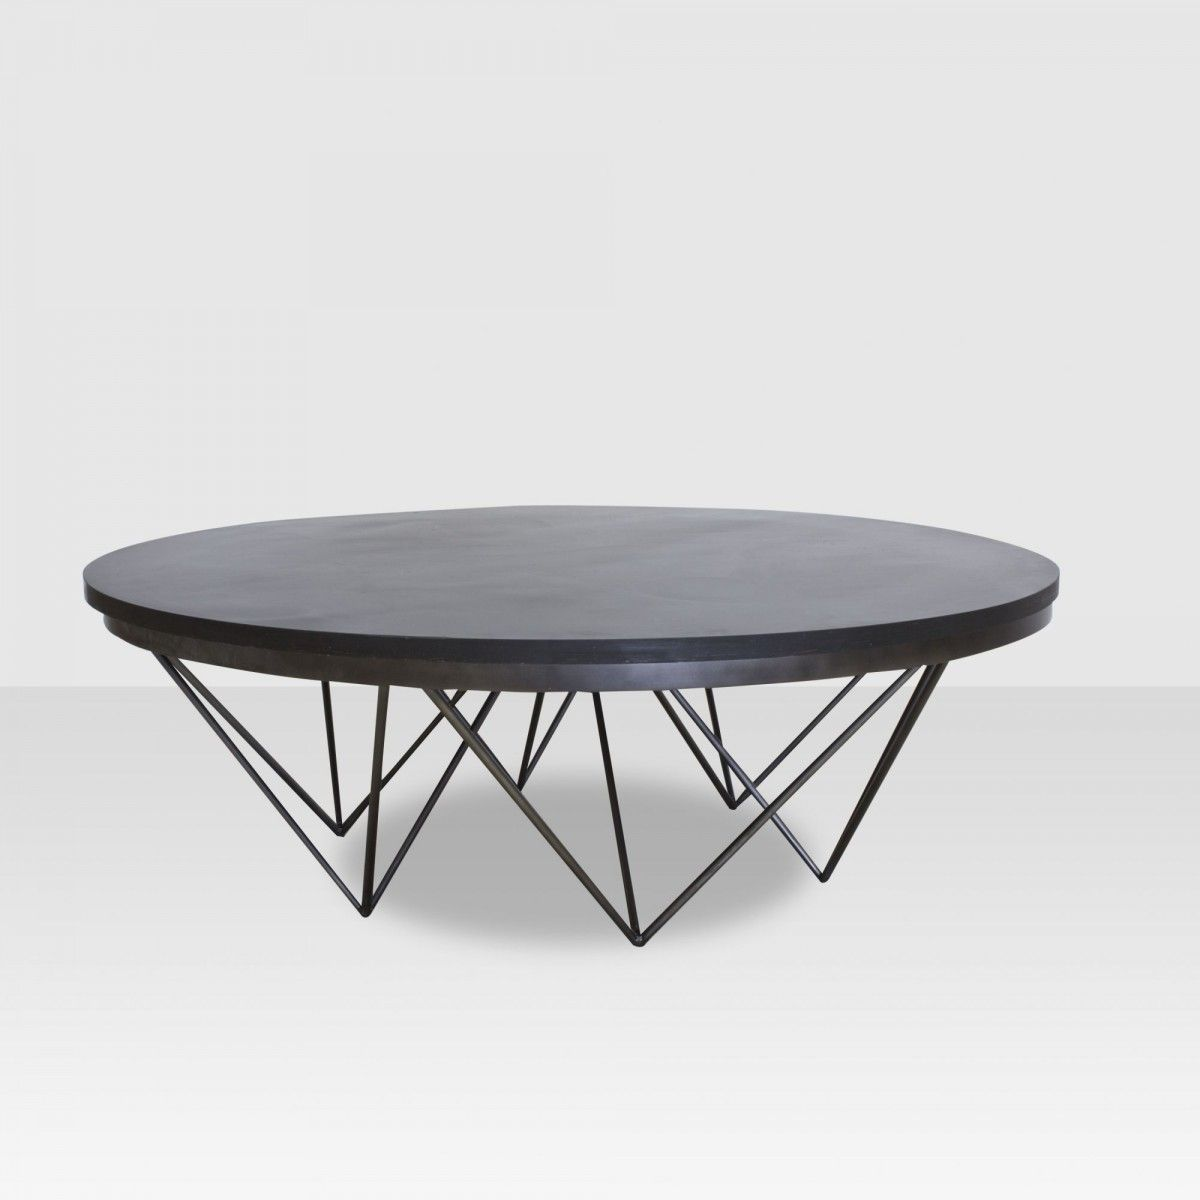 Low Round Coffee Table With Thin Legs Or Base. Safer For Kids, Creates More